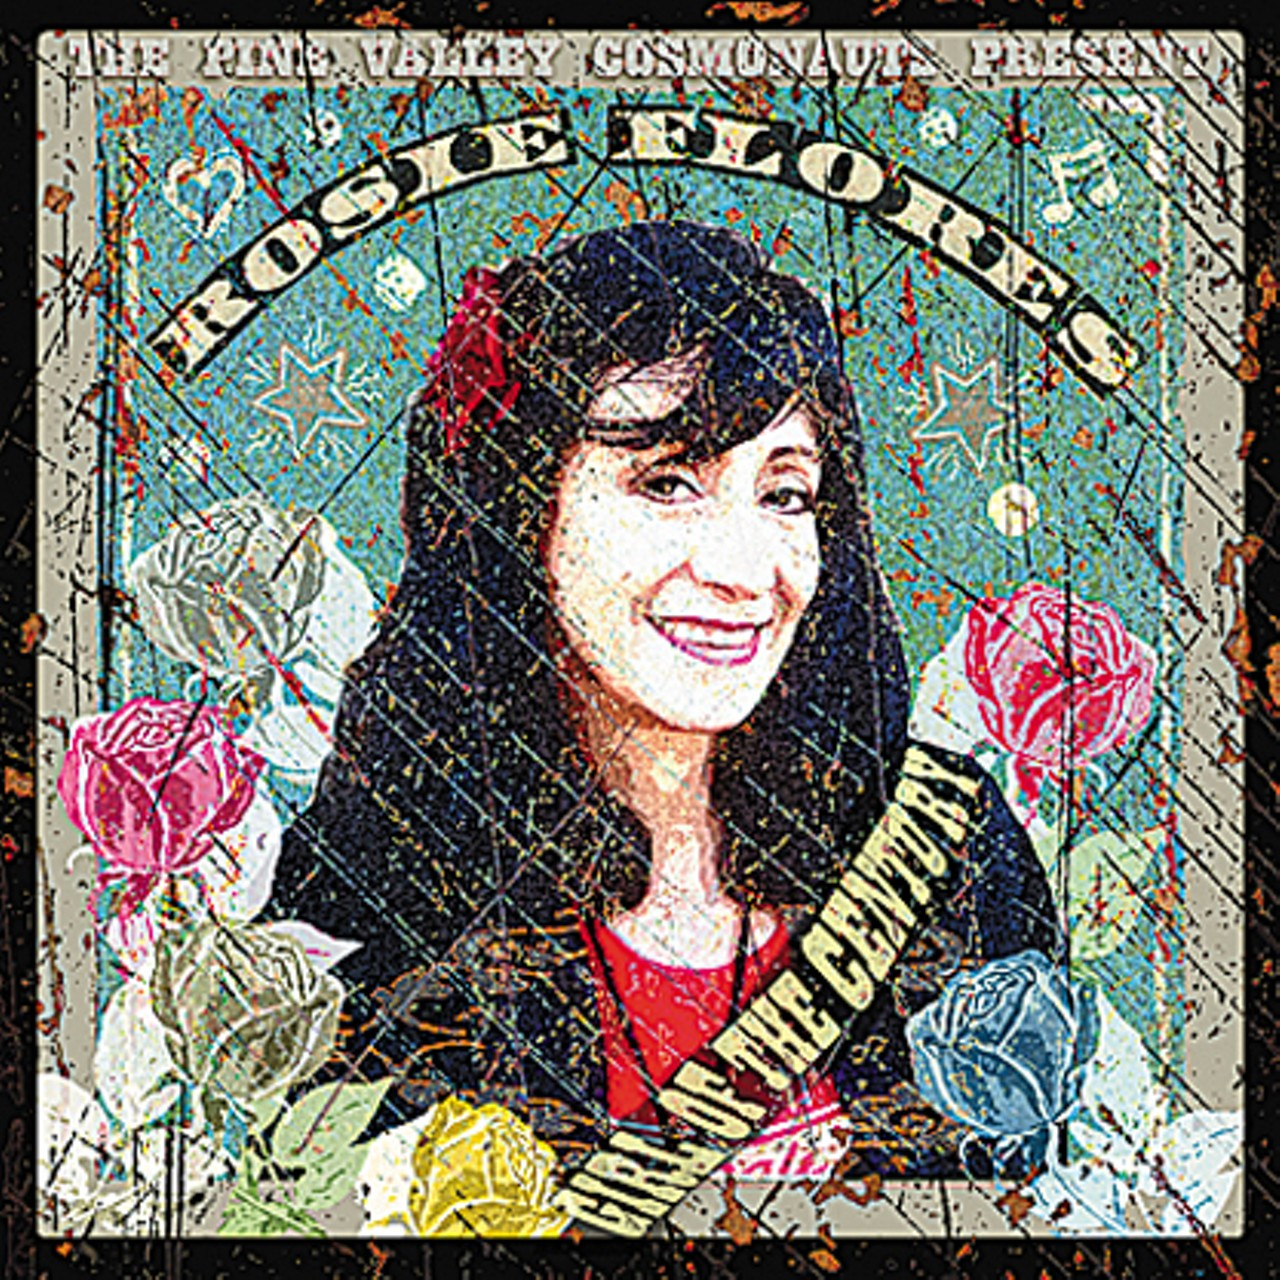 CD Review: Rosie Flores and the Pine Valley Cosmonauts ...